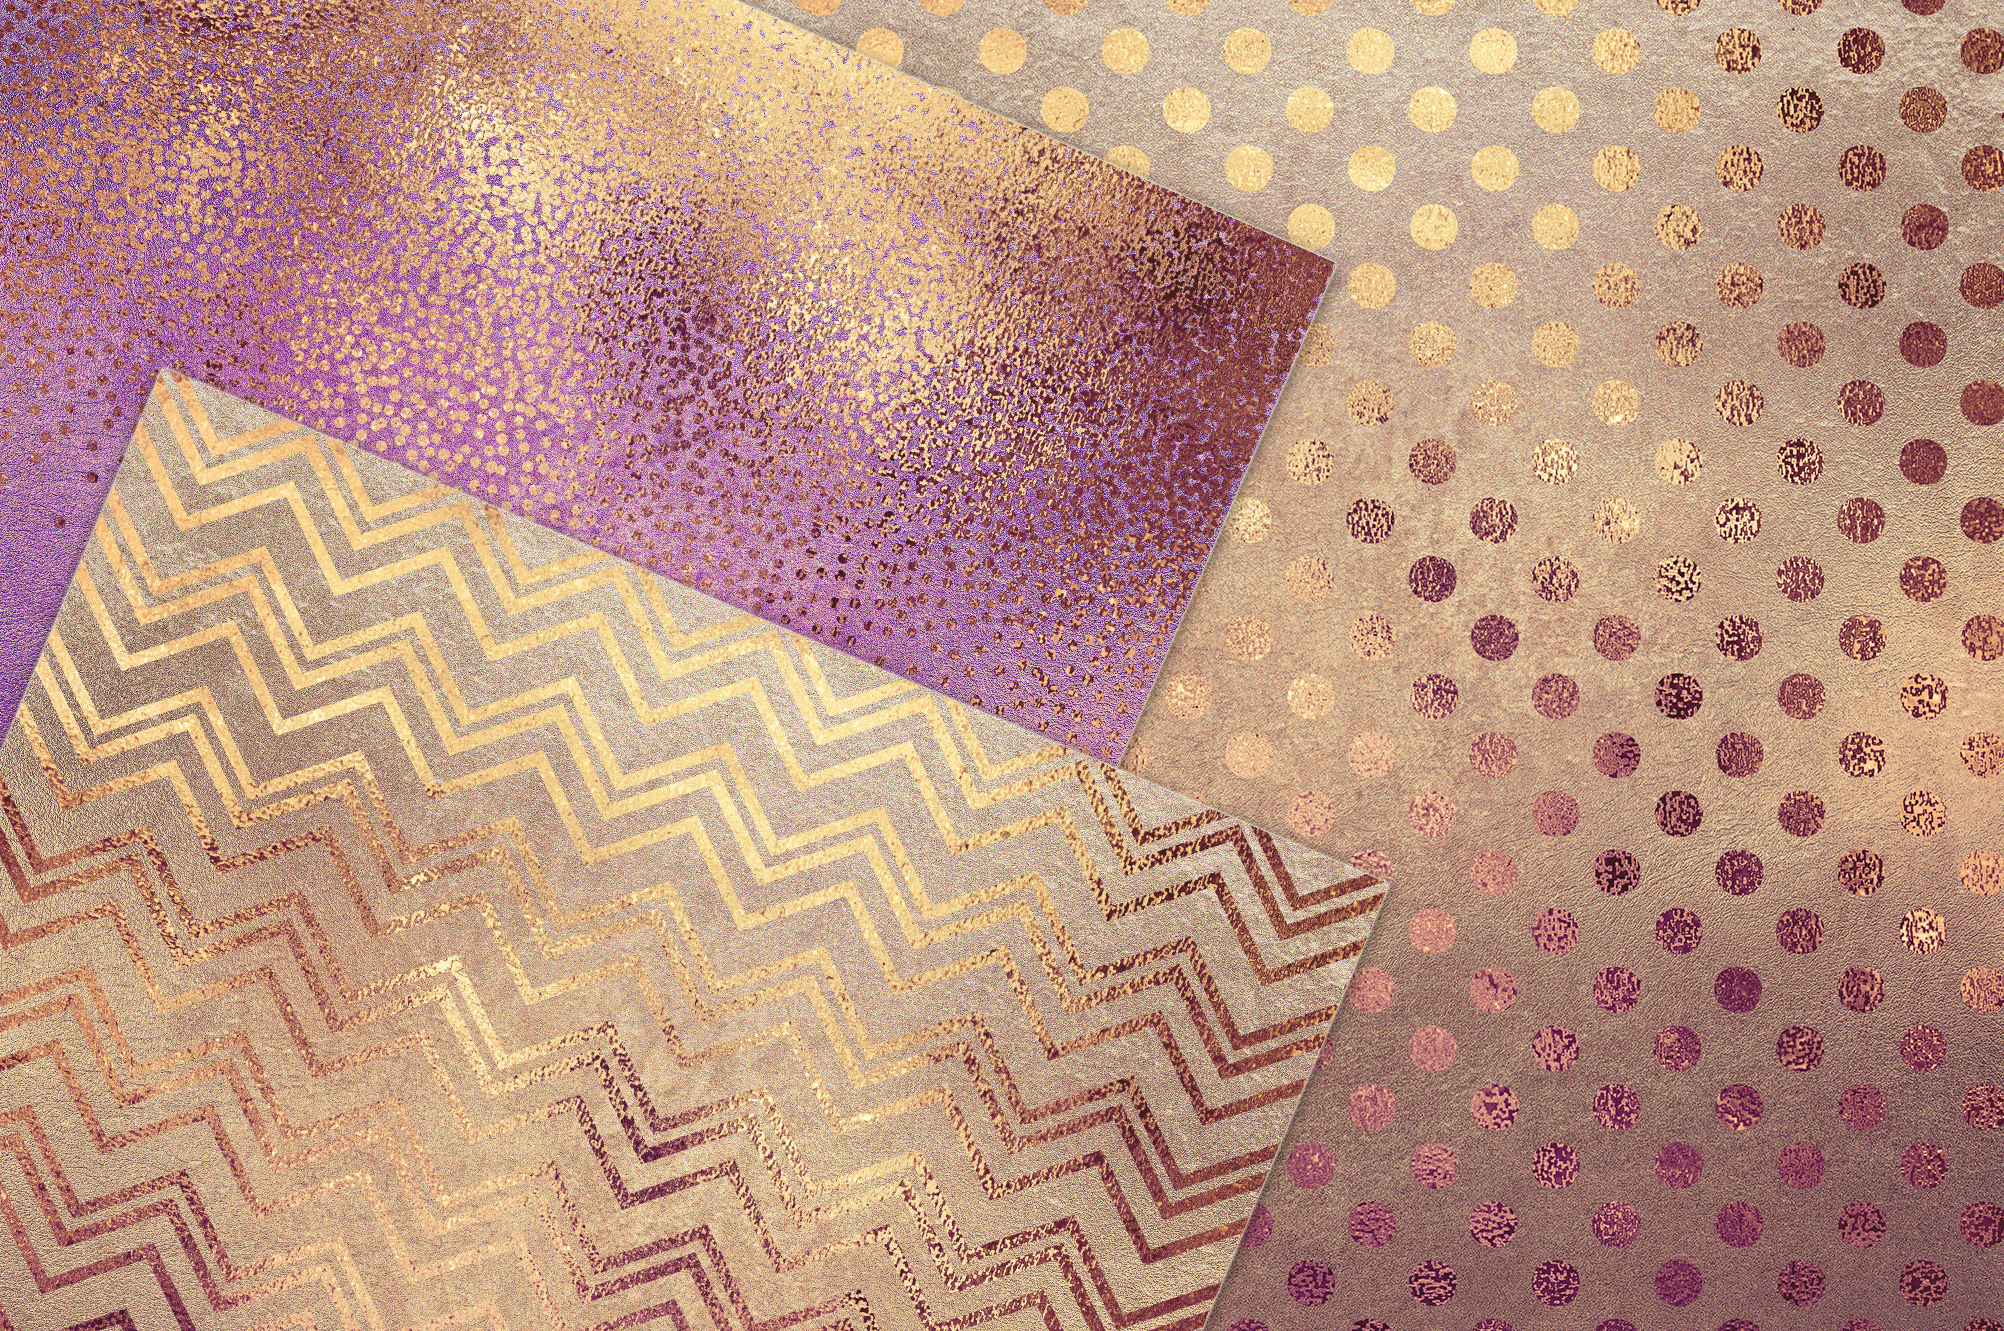 Rose Gold Pattern & Textures example image 2